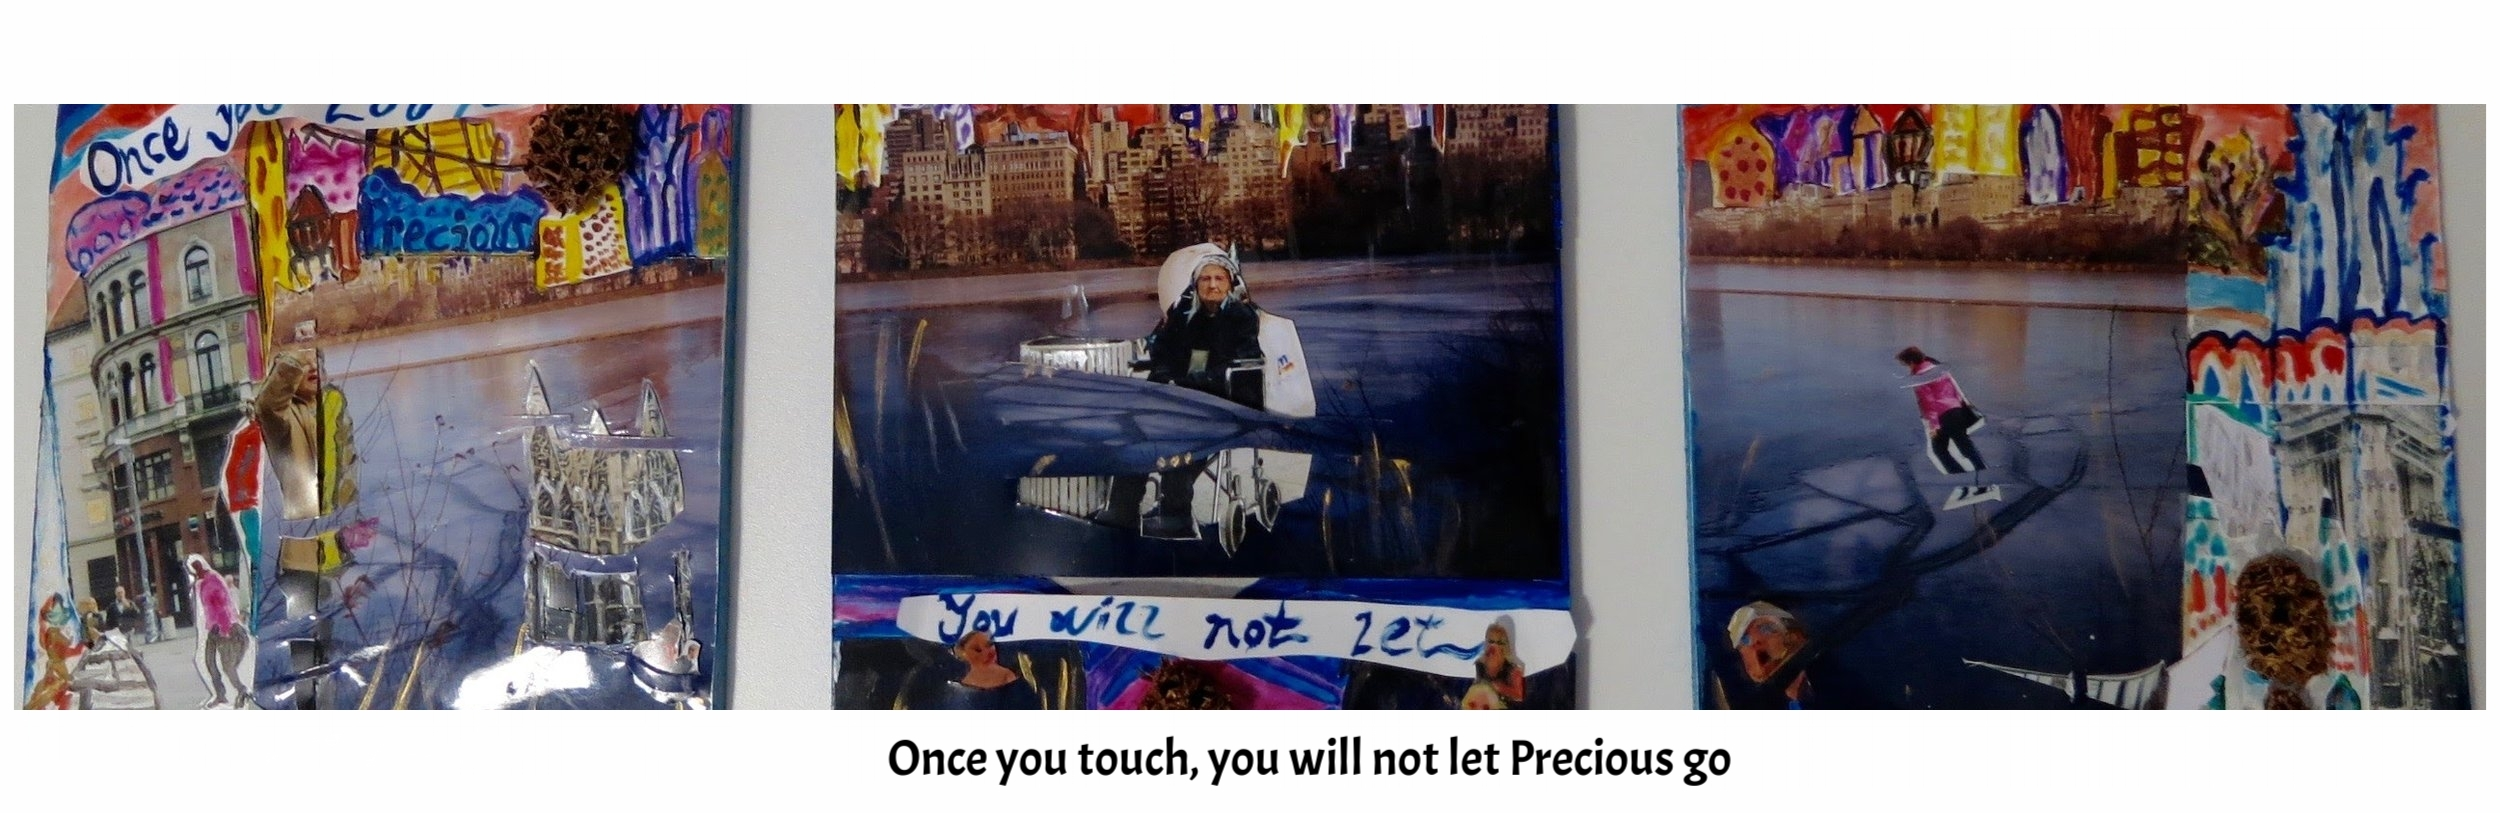 Once your touch precious_2343.jpg